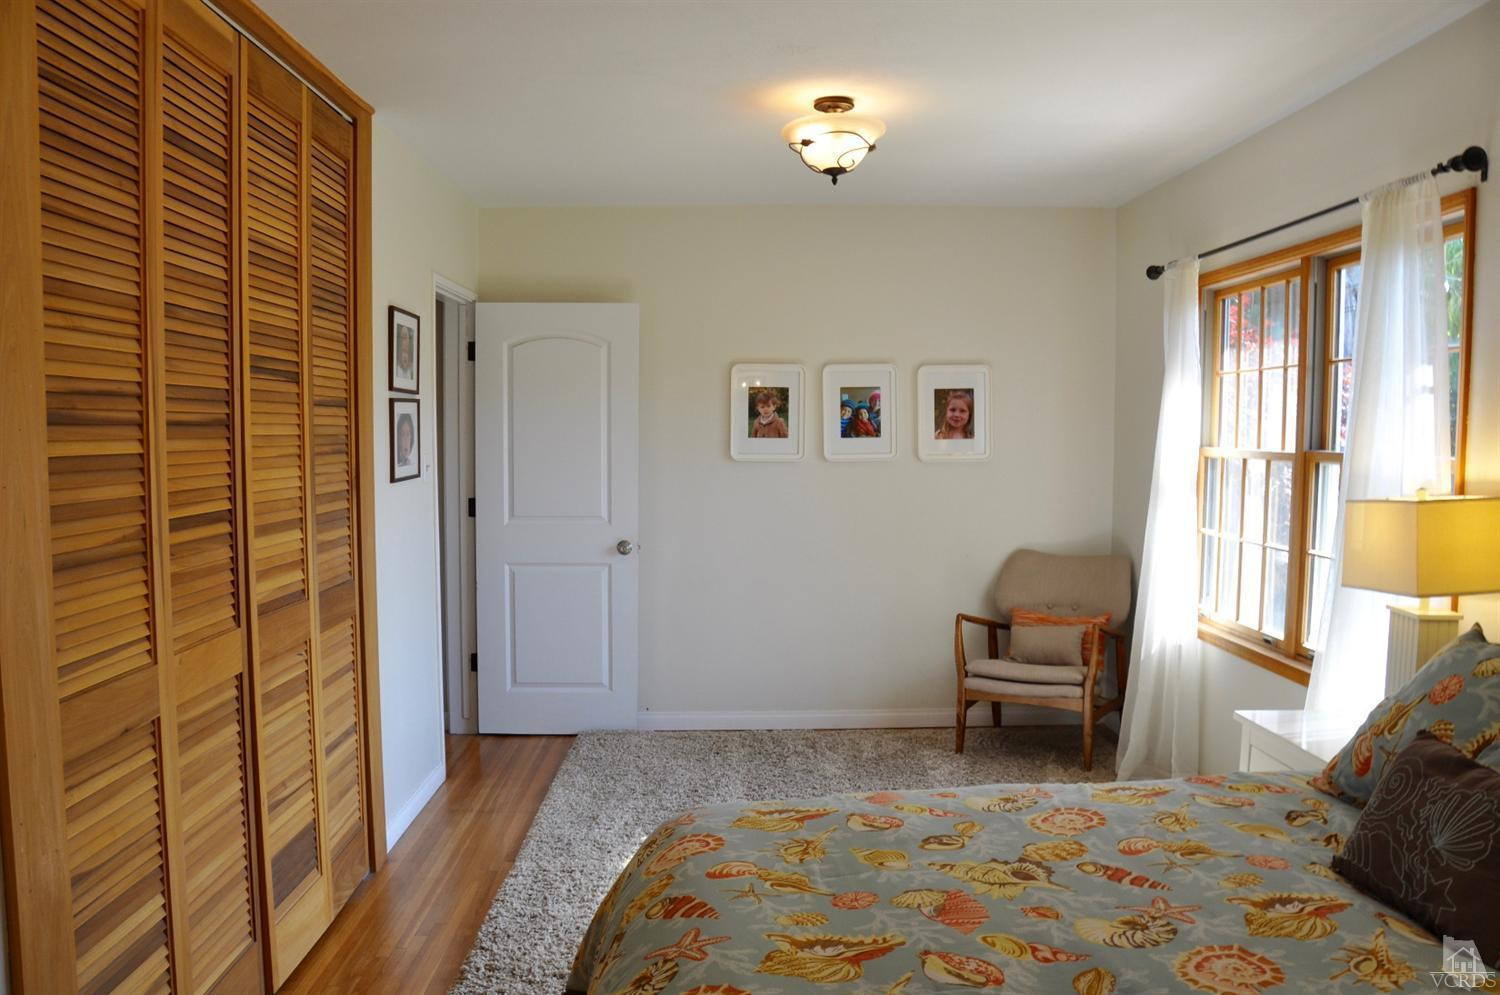 hardwood flooring ventura ca of listing 331 rancho drive ventura ca mls 216006739 oxnard and within property photo